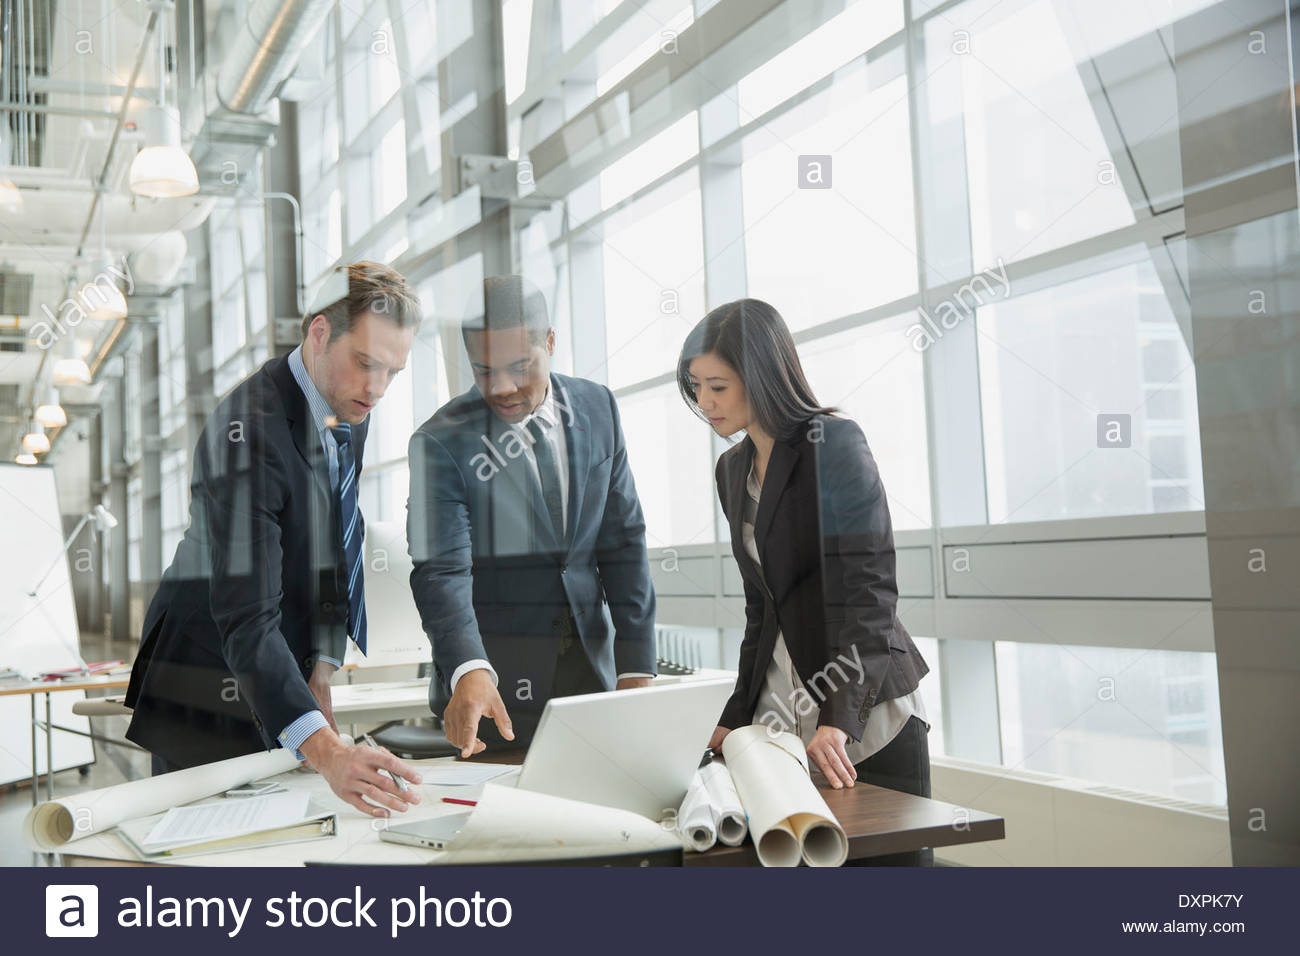 Business people reviewing blueprints at desk - Stock Image